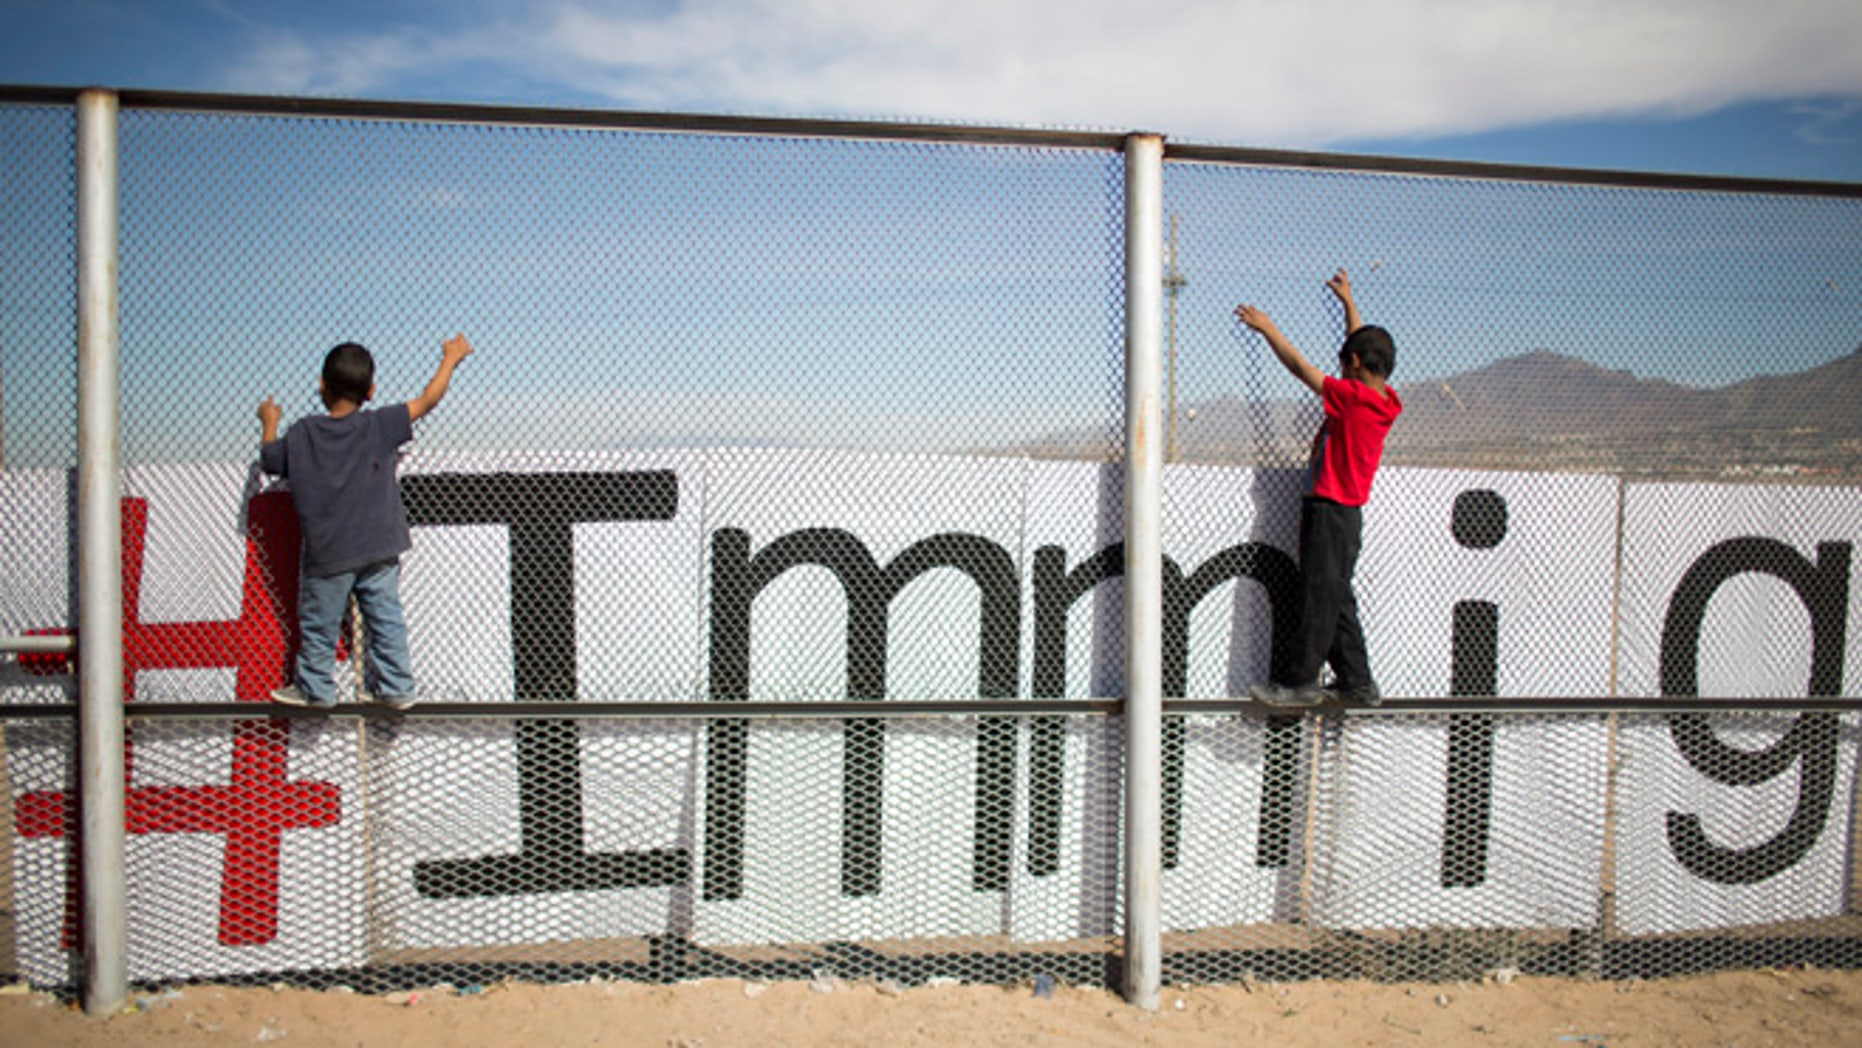 "Two small boys balance themselves on the rail of a border fence during an event organized by the Border Network for Human Rights, on the outskirts of  Ciudad Juarez, Mexico, Monday, Feb. 15, 2016. Pope Francis will conclude his weeklong Mexico trip with a visit to Ciudad Juarez where he will meet with Mexican workers, grassroots groups and employers in an encounter where he'll likely repeat his mantra on the need for dignified work for all and ""land, labor and lodging."" (AP Photo/Ivan Pierre Aguirre)"